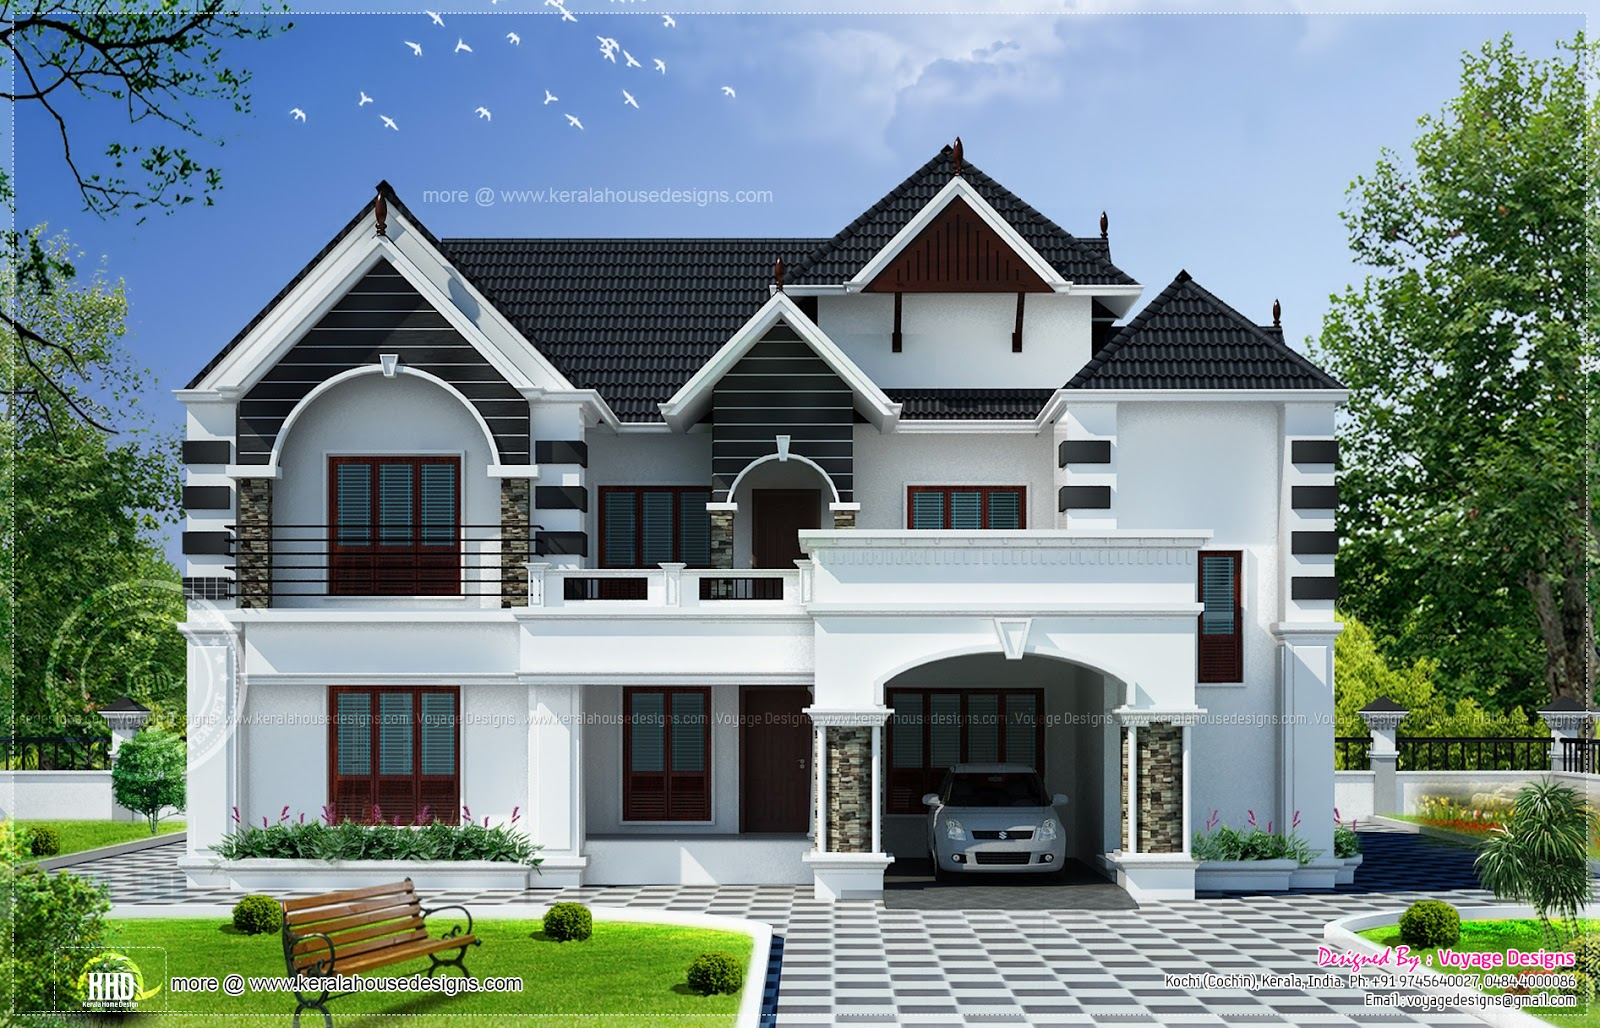 4 bedroom colonial style house kerala home design and for Colonial home designs